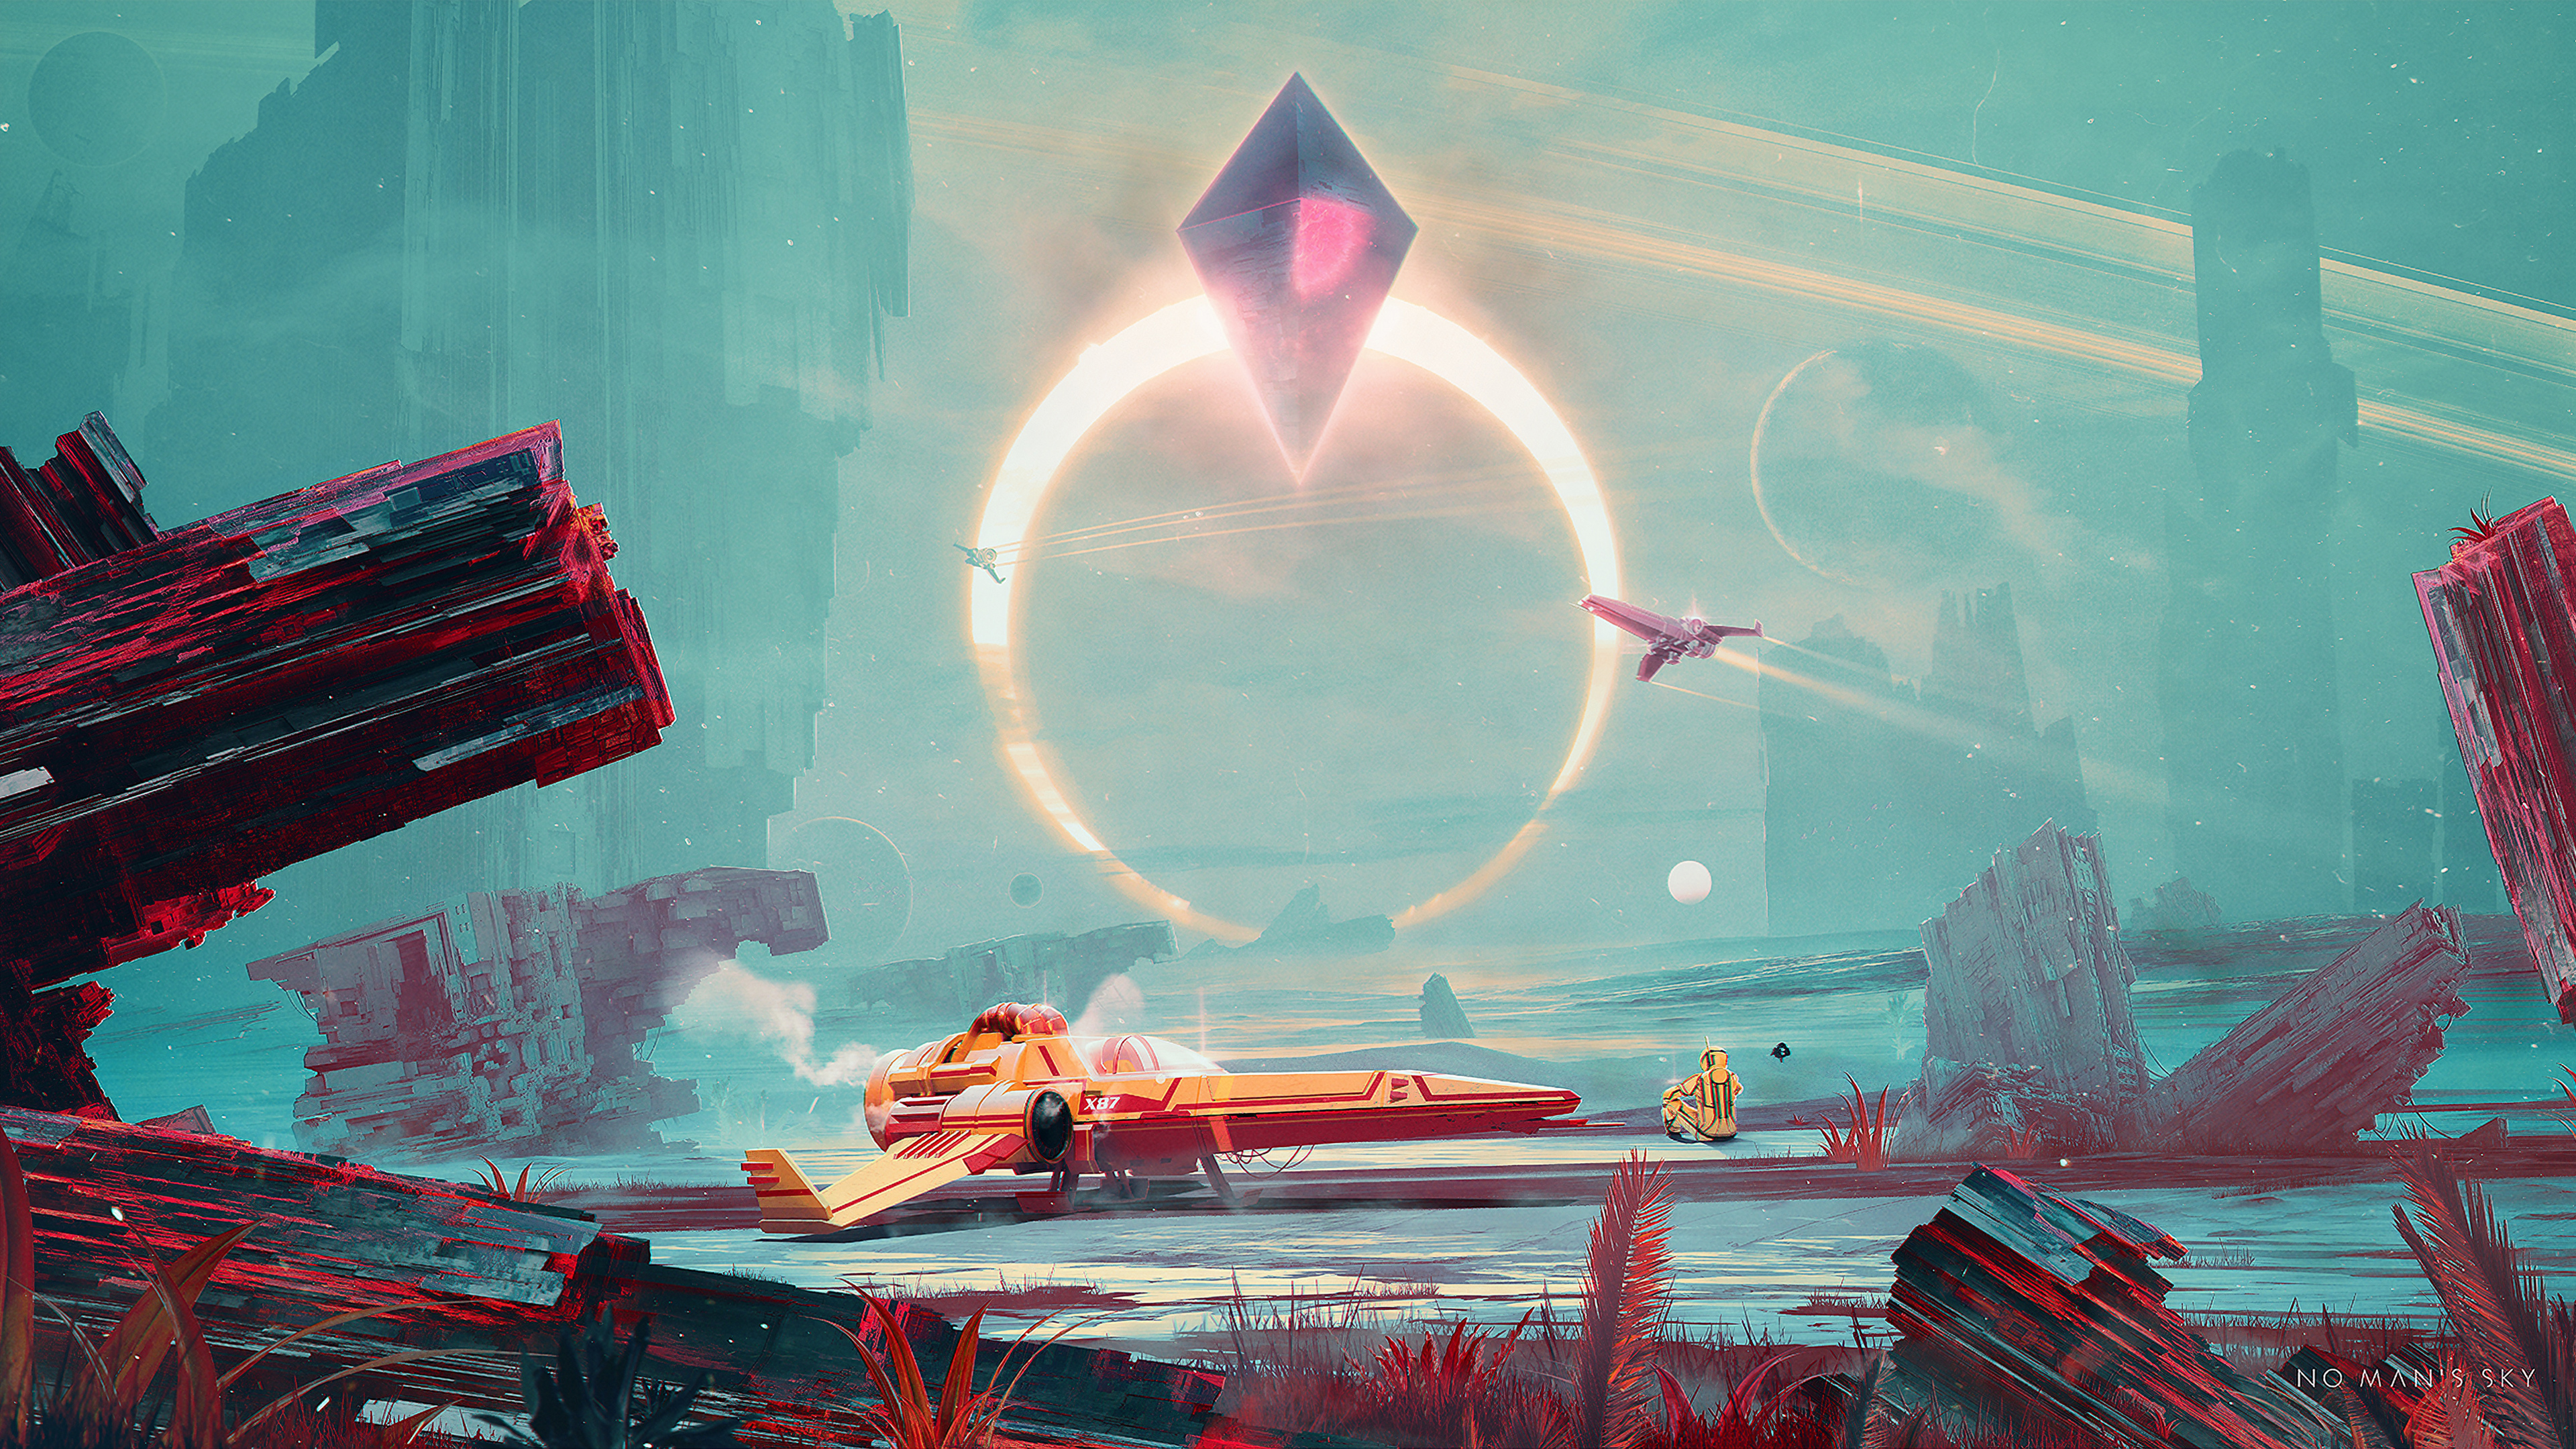 no mans sky 2019 art 1570393491 - No Mans Sky 2019 Art - no mans sky wallpapers, hd-wallpapers, games wallpapers, deviantart wallpapers, 4k-wallpapers, 2019 games wallpapers